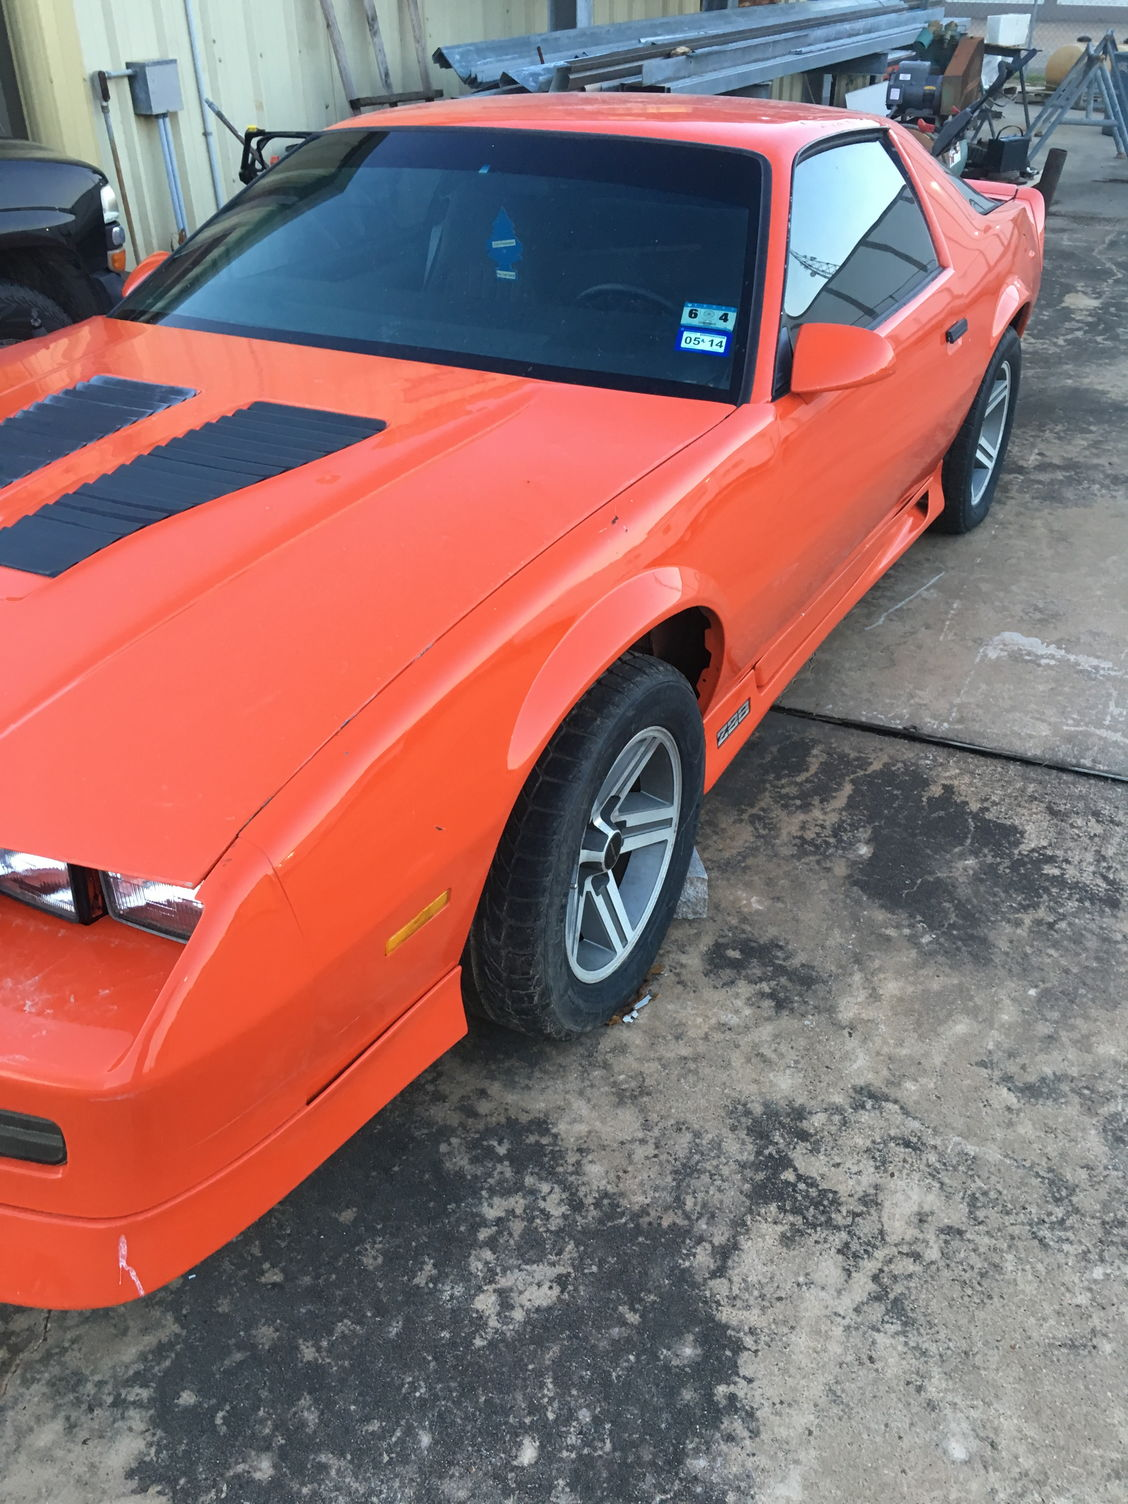 529628 Got Vette Wheels Post 18 as well 393019 17 Inch Iroc Wheels additionally 303736 Mid Mounted Ls1 T56 Transaxle also ShowAssembly besides 600352 C5 Corvette Rear Differential Modification. on 2002 camaro ls1 engine